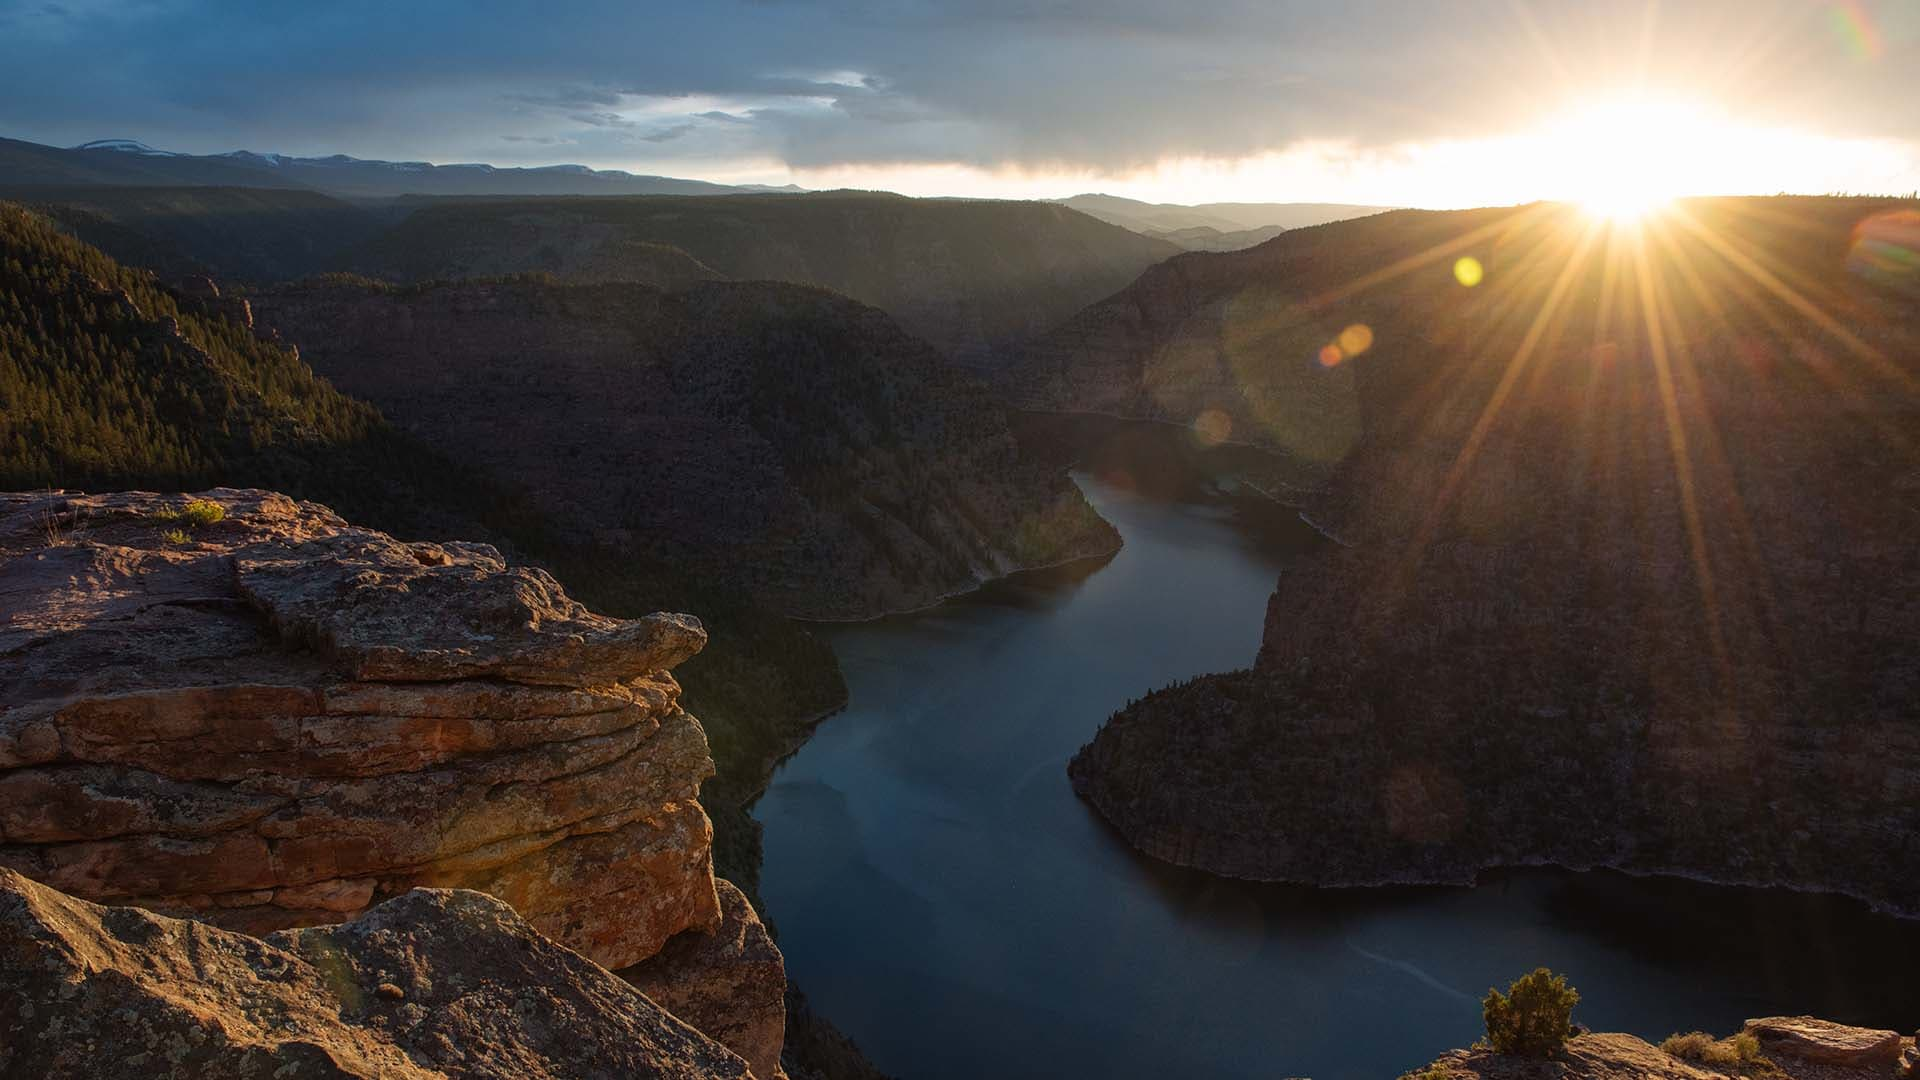 The sun sets on the Red Canyon Overlook, 518 metres above the Flaming Gorge Reservoir, near Dutch John, Utah.